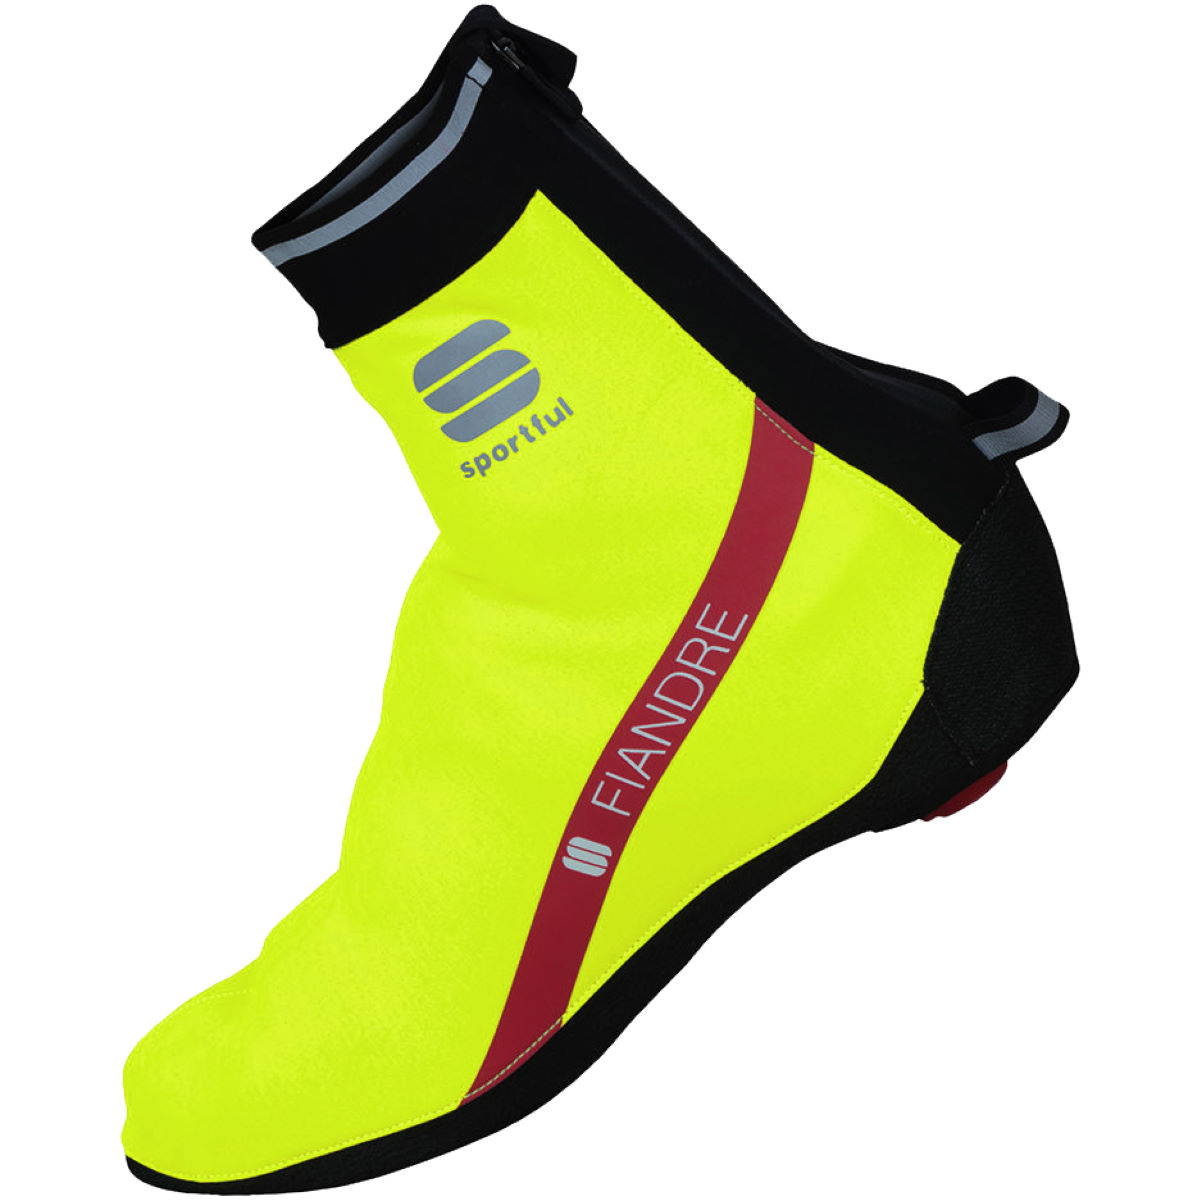 Couvre-chaussures Sportful Fiandre Windstopper - XXL Yellow Fluo